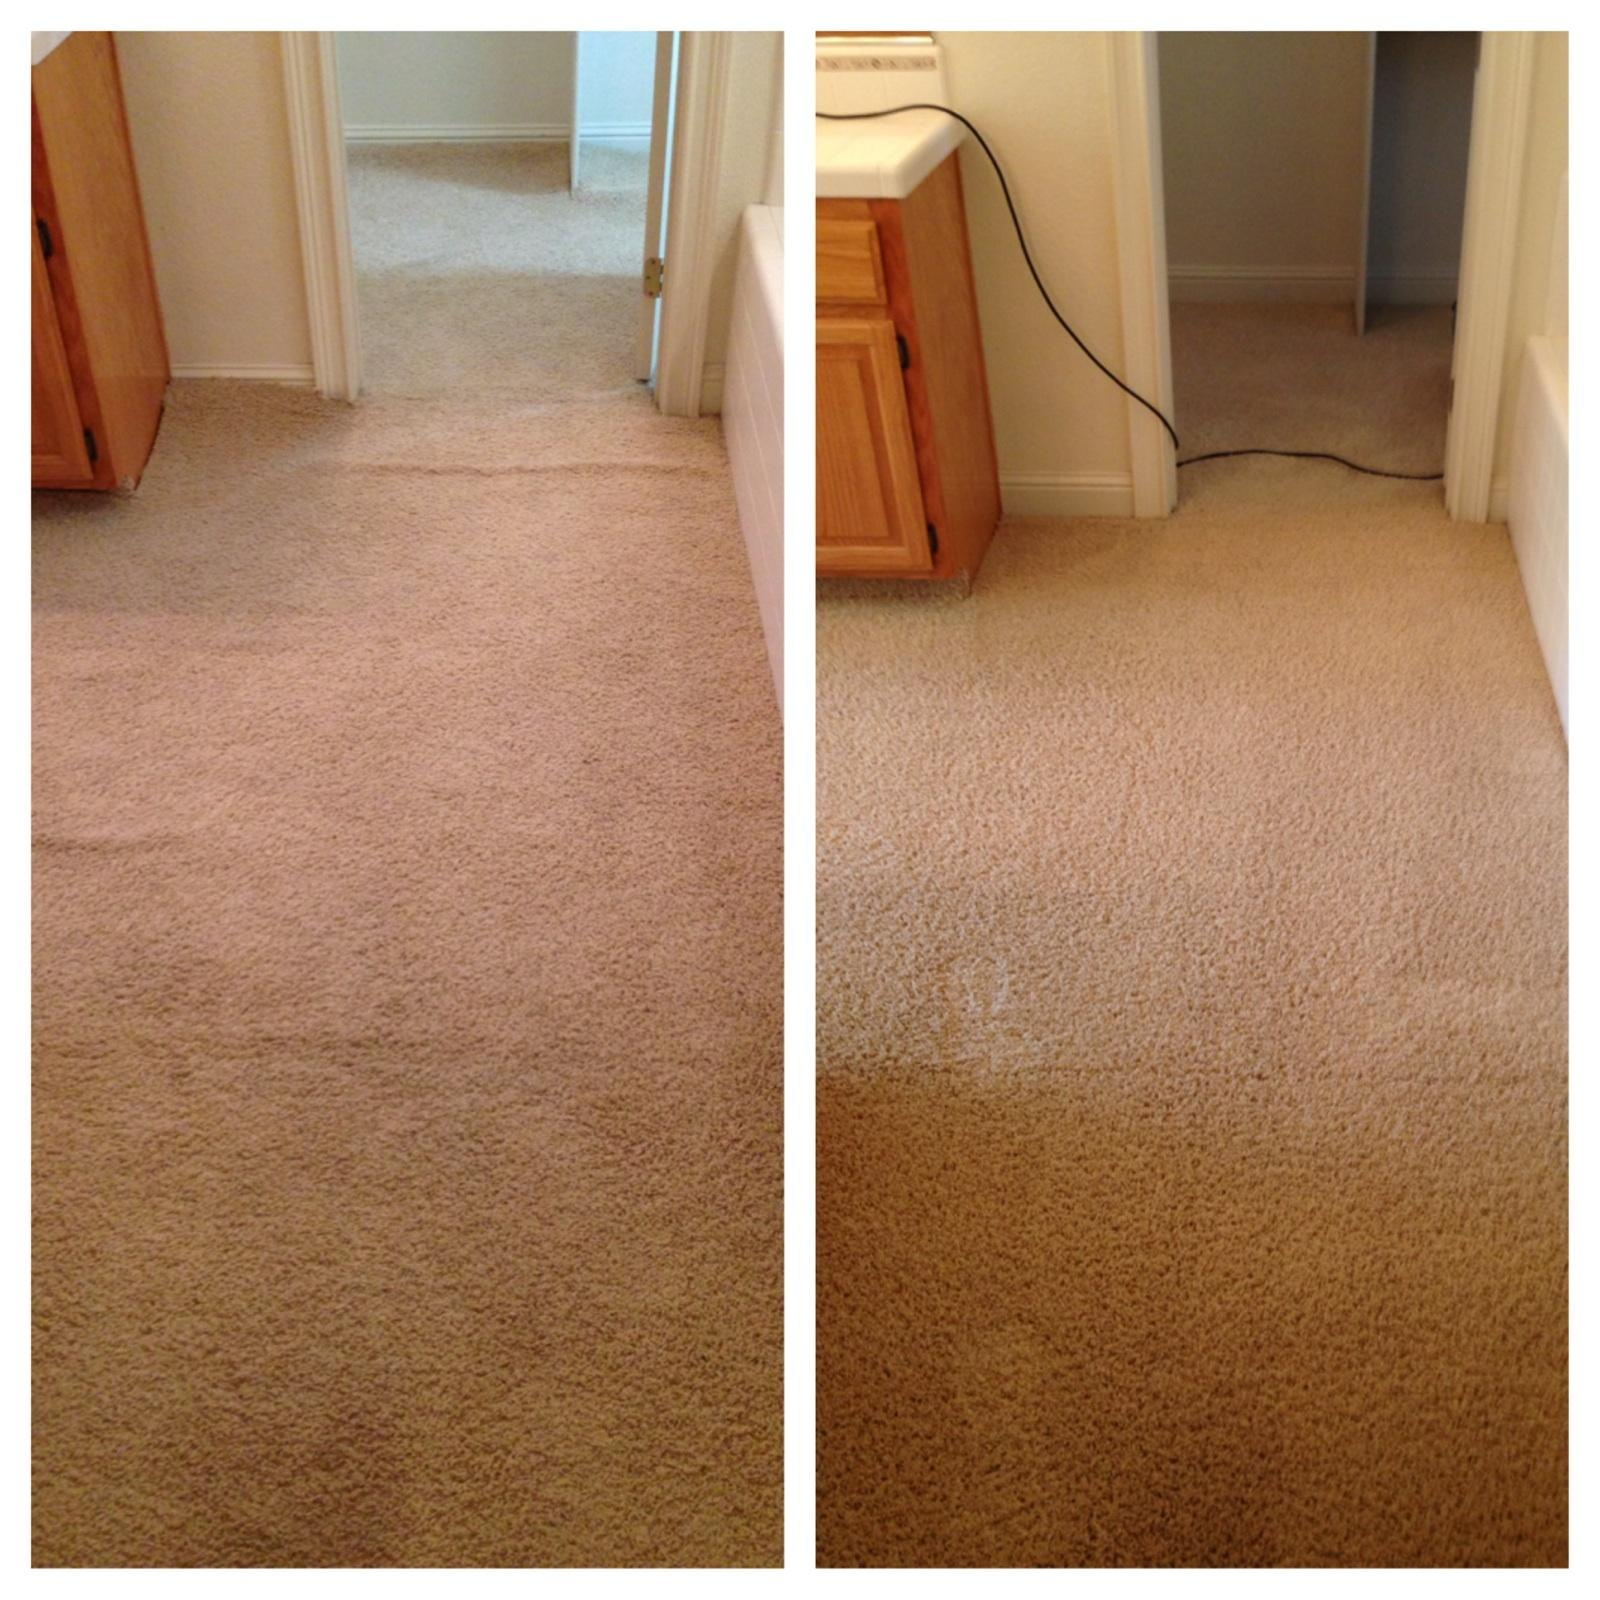 Folsom carpet repair, folsom carpet re-stretching,